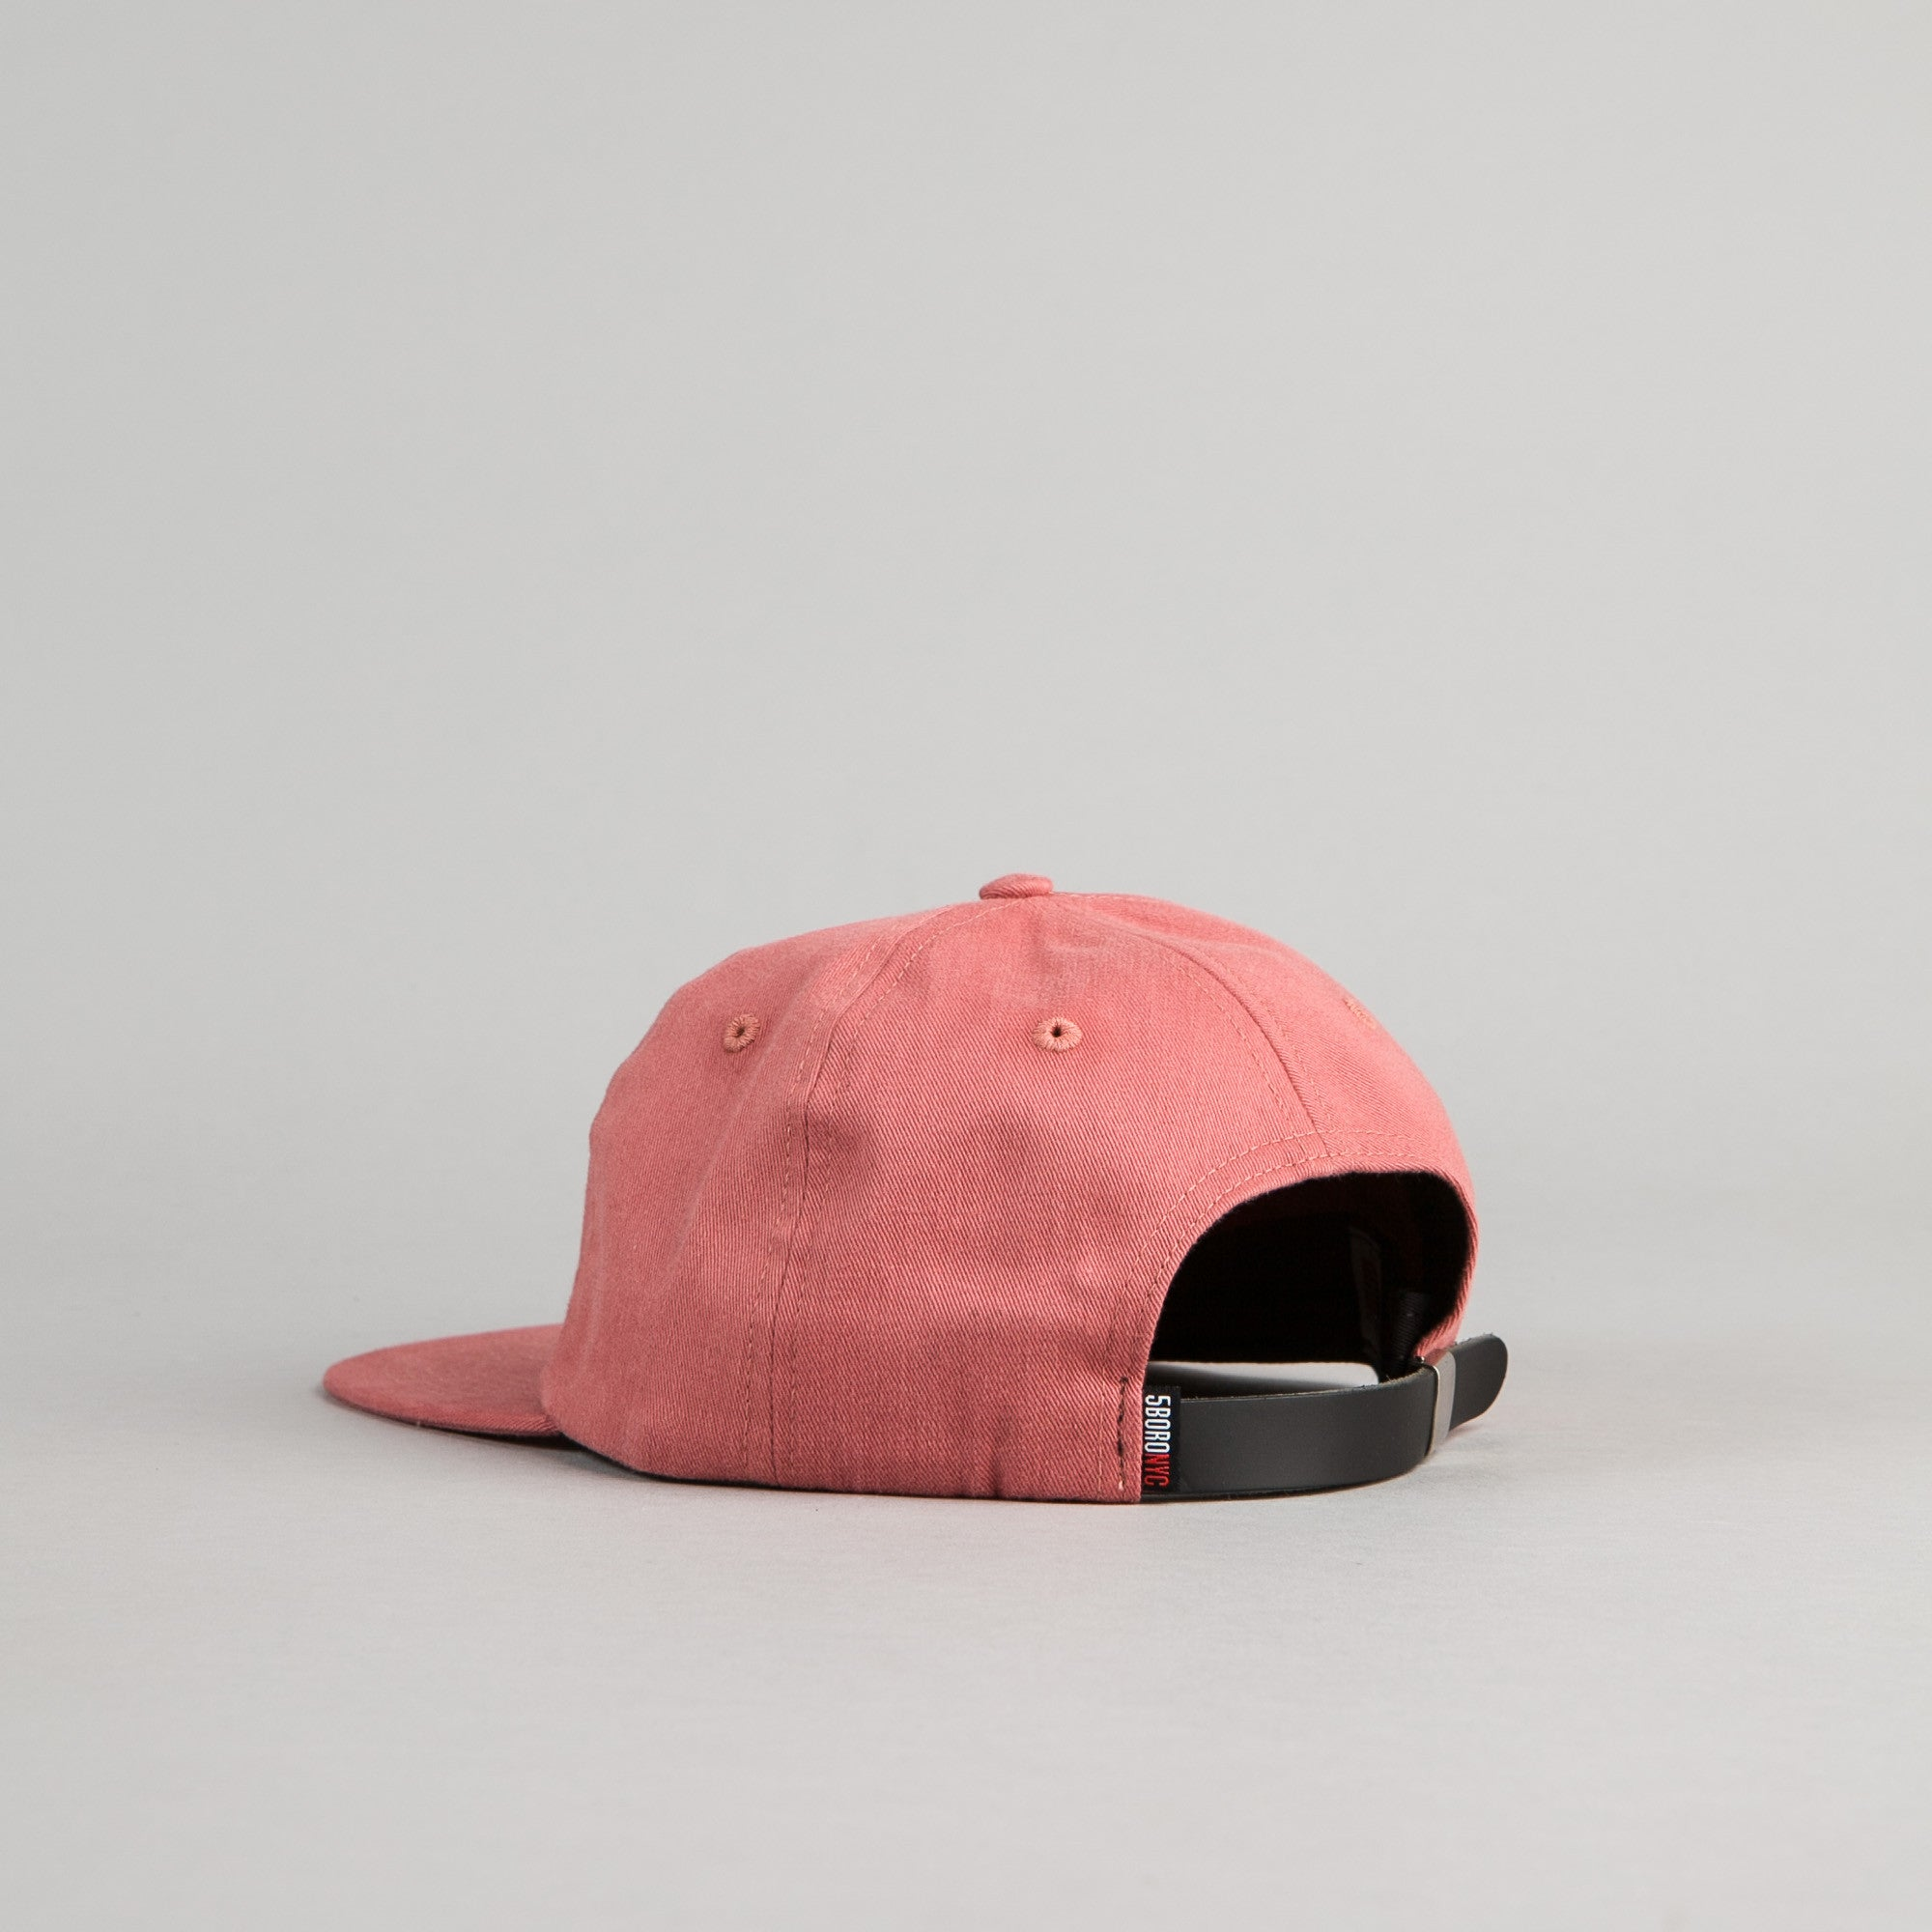 5Boro 5B Script Six Panel Cap - Red